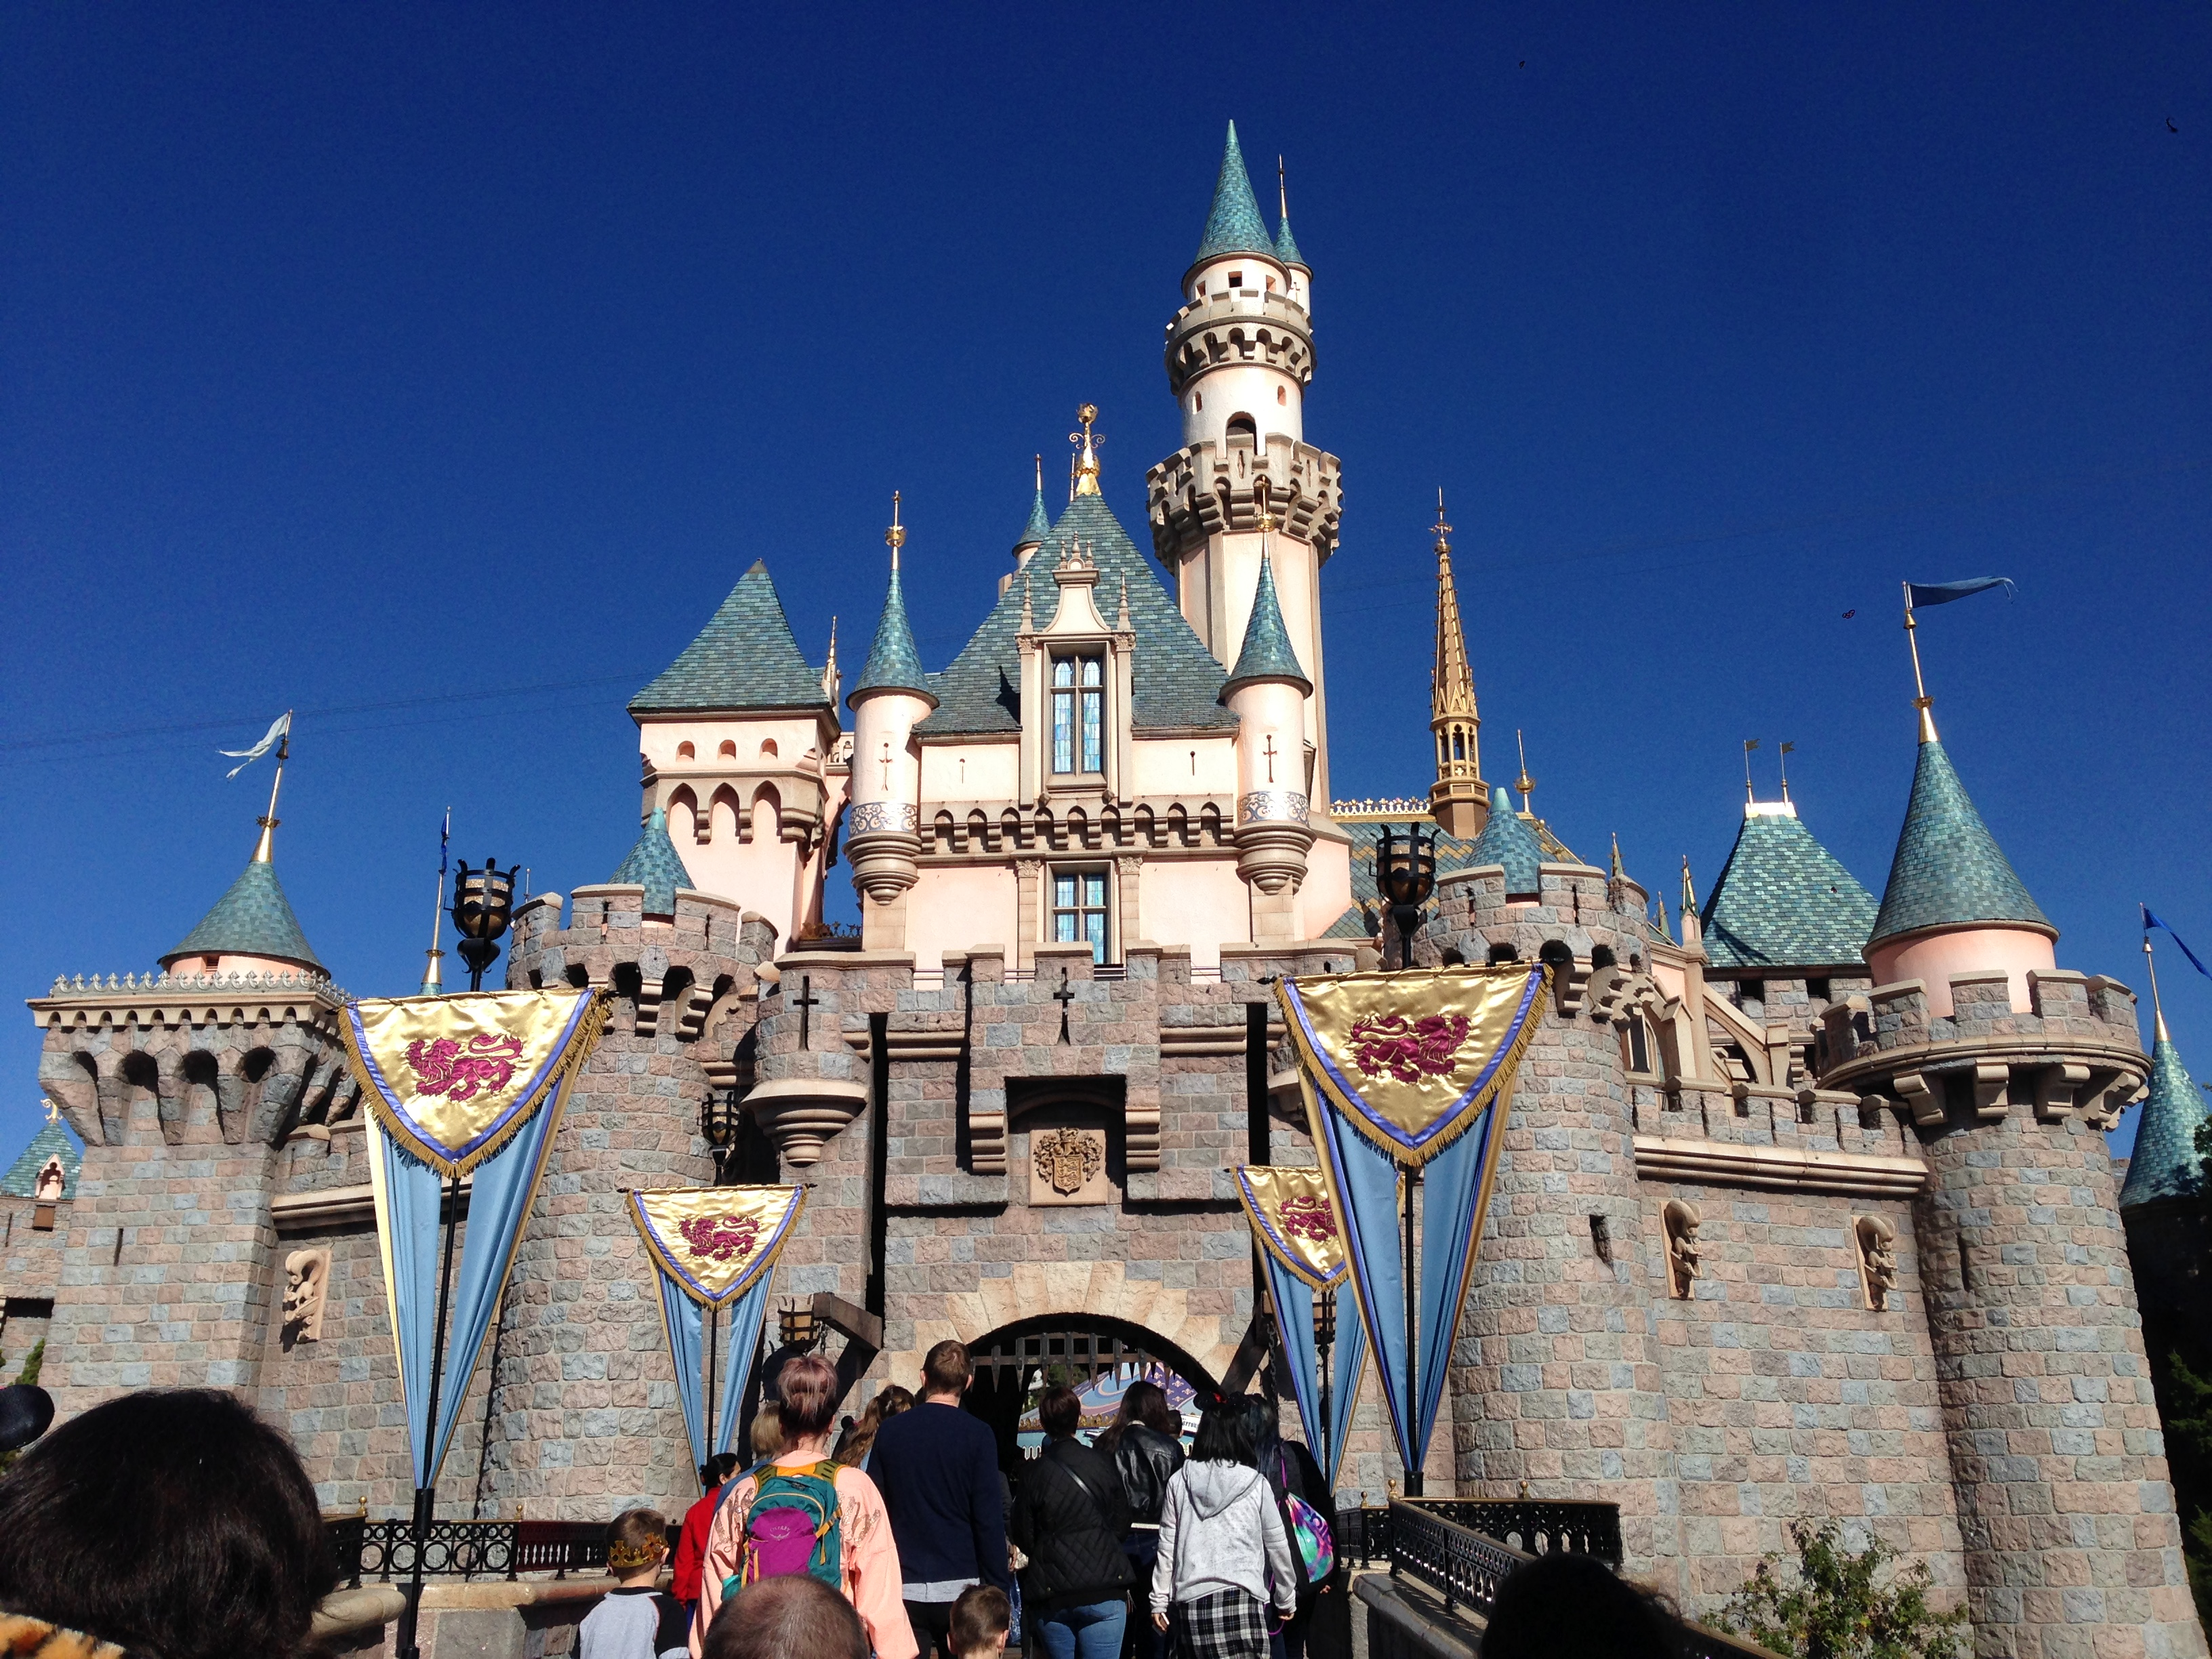 PROP-15: You shouldn't pay more in property taxes for your castle than Disney pays for theirs.